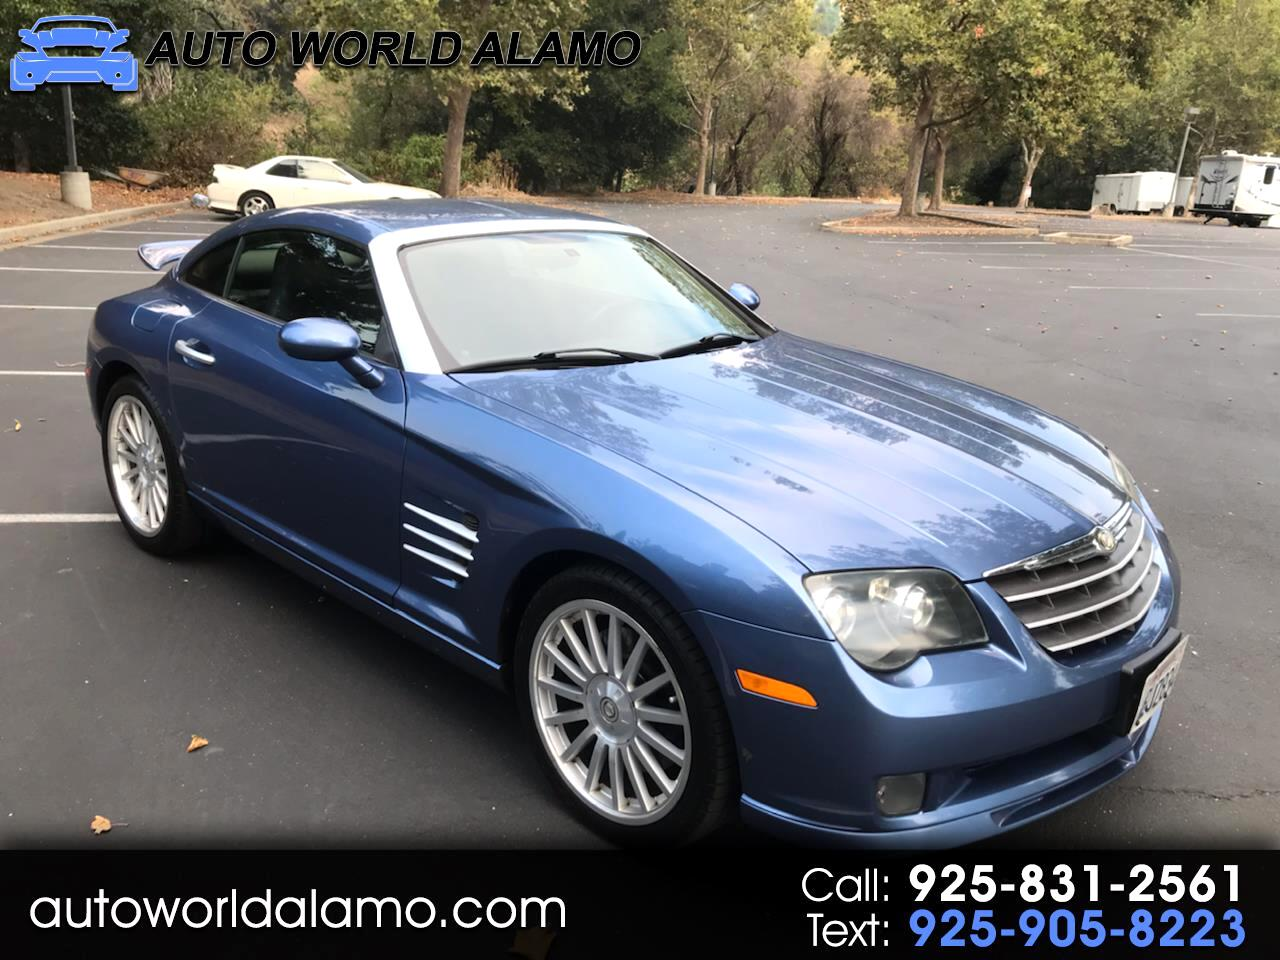 Chrysler Crossfire 2dr Cpe SRT6 2005